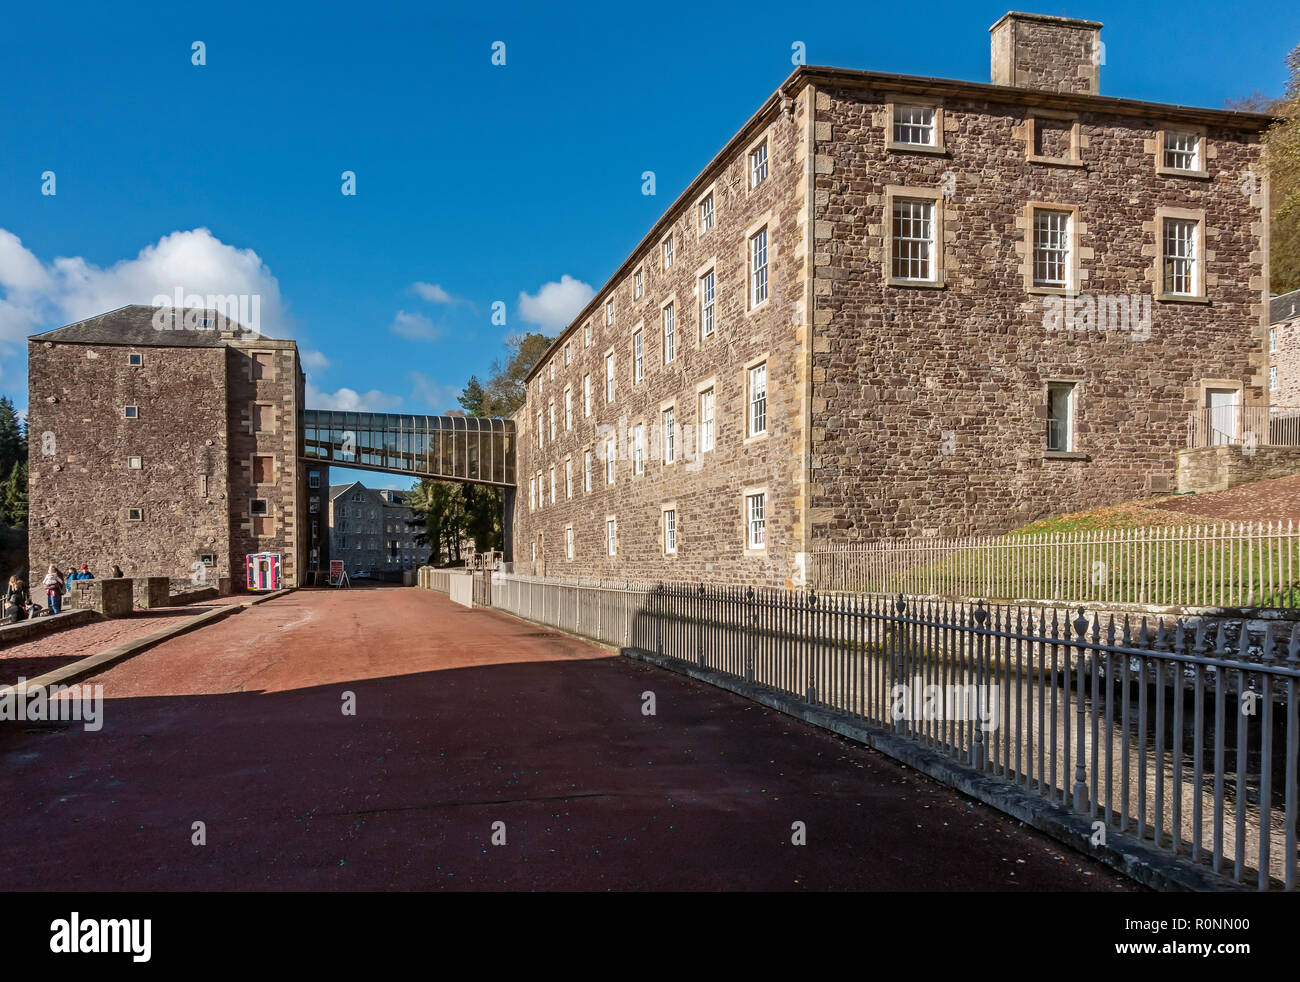 Mill 3 (left) & Institute (right) at New Lanark Mills World Heritage Site by the River Clyde in Lanark Lanarkshire Scotland UK - Stock Image